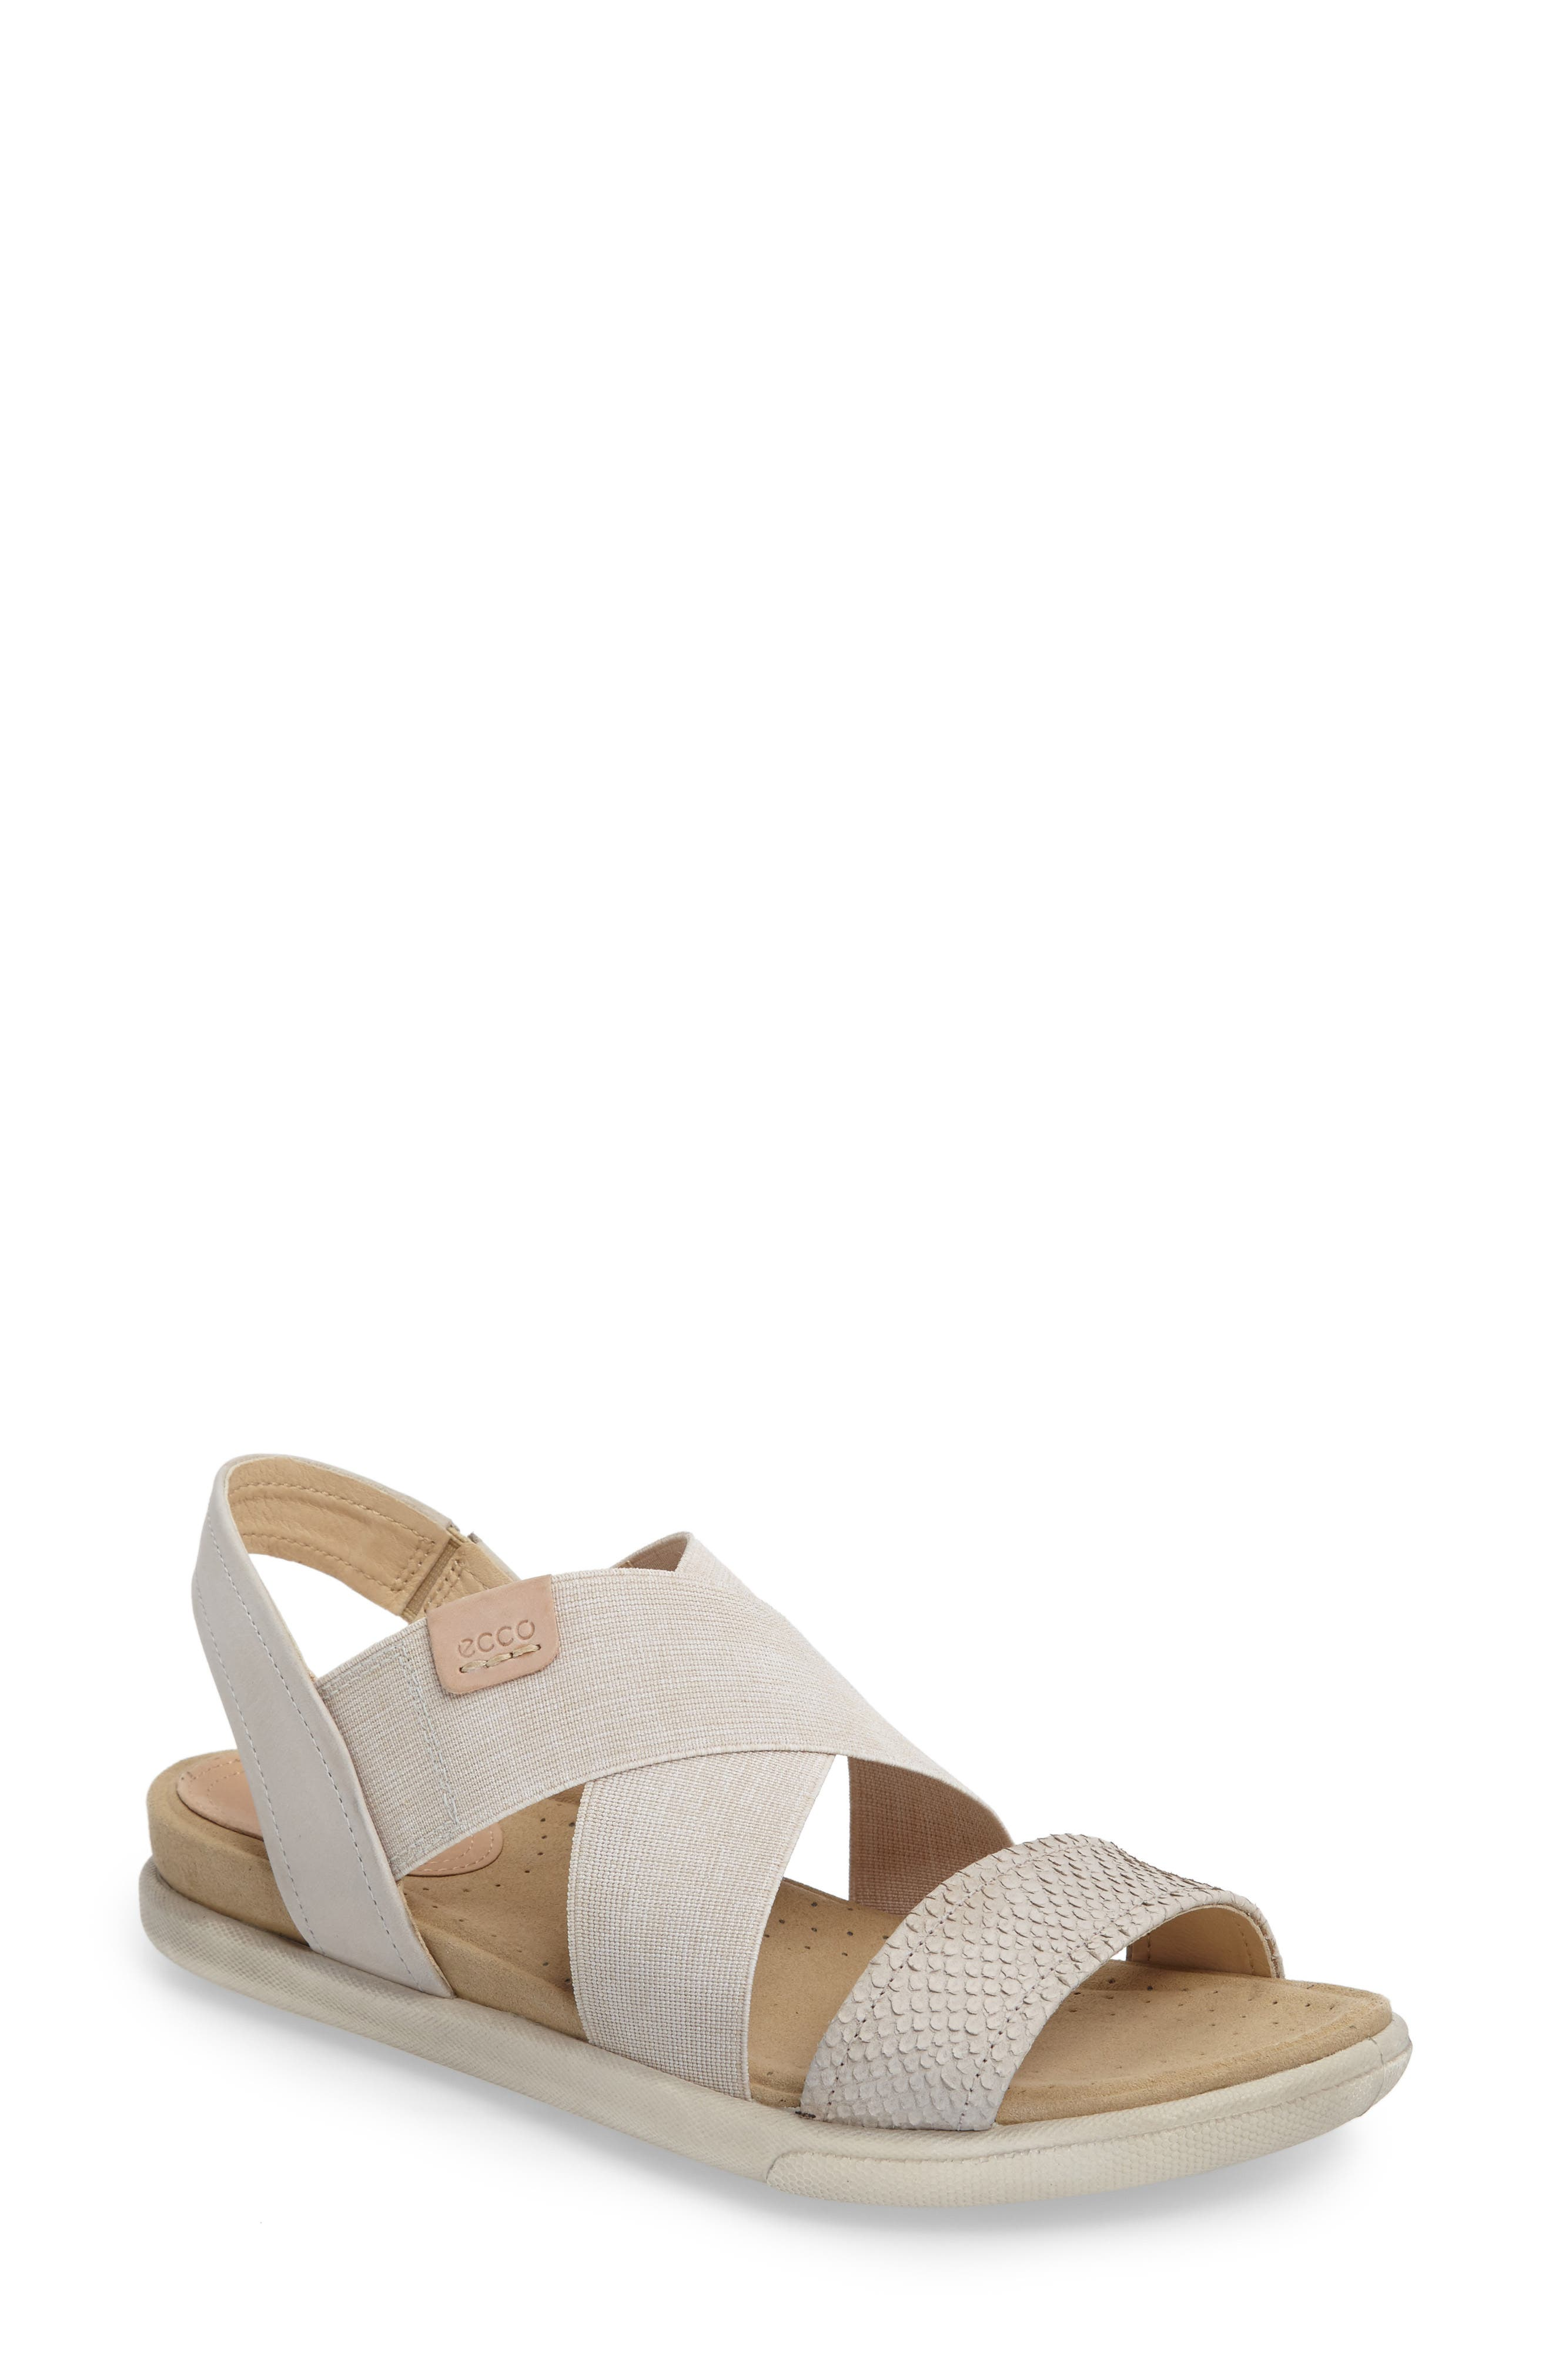 Alternate Image 1 Selected - ECCO Damara Cross-Strap Sandal (Women)